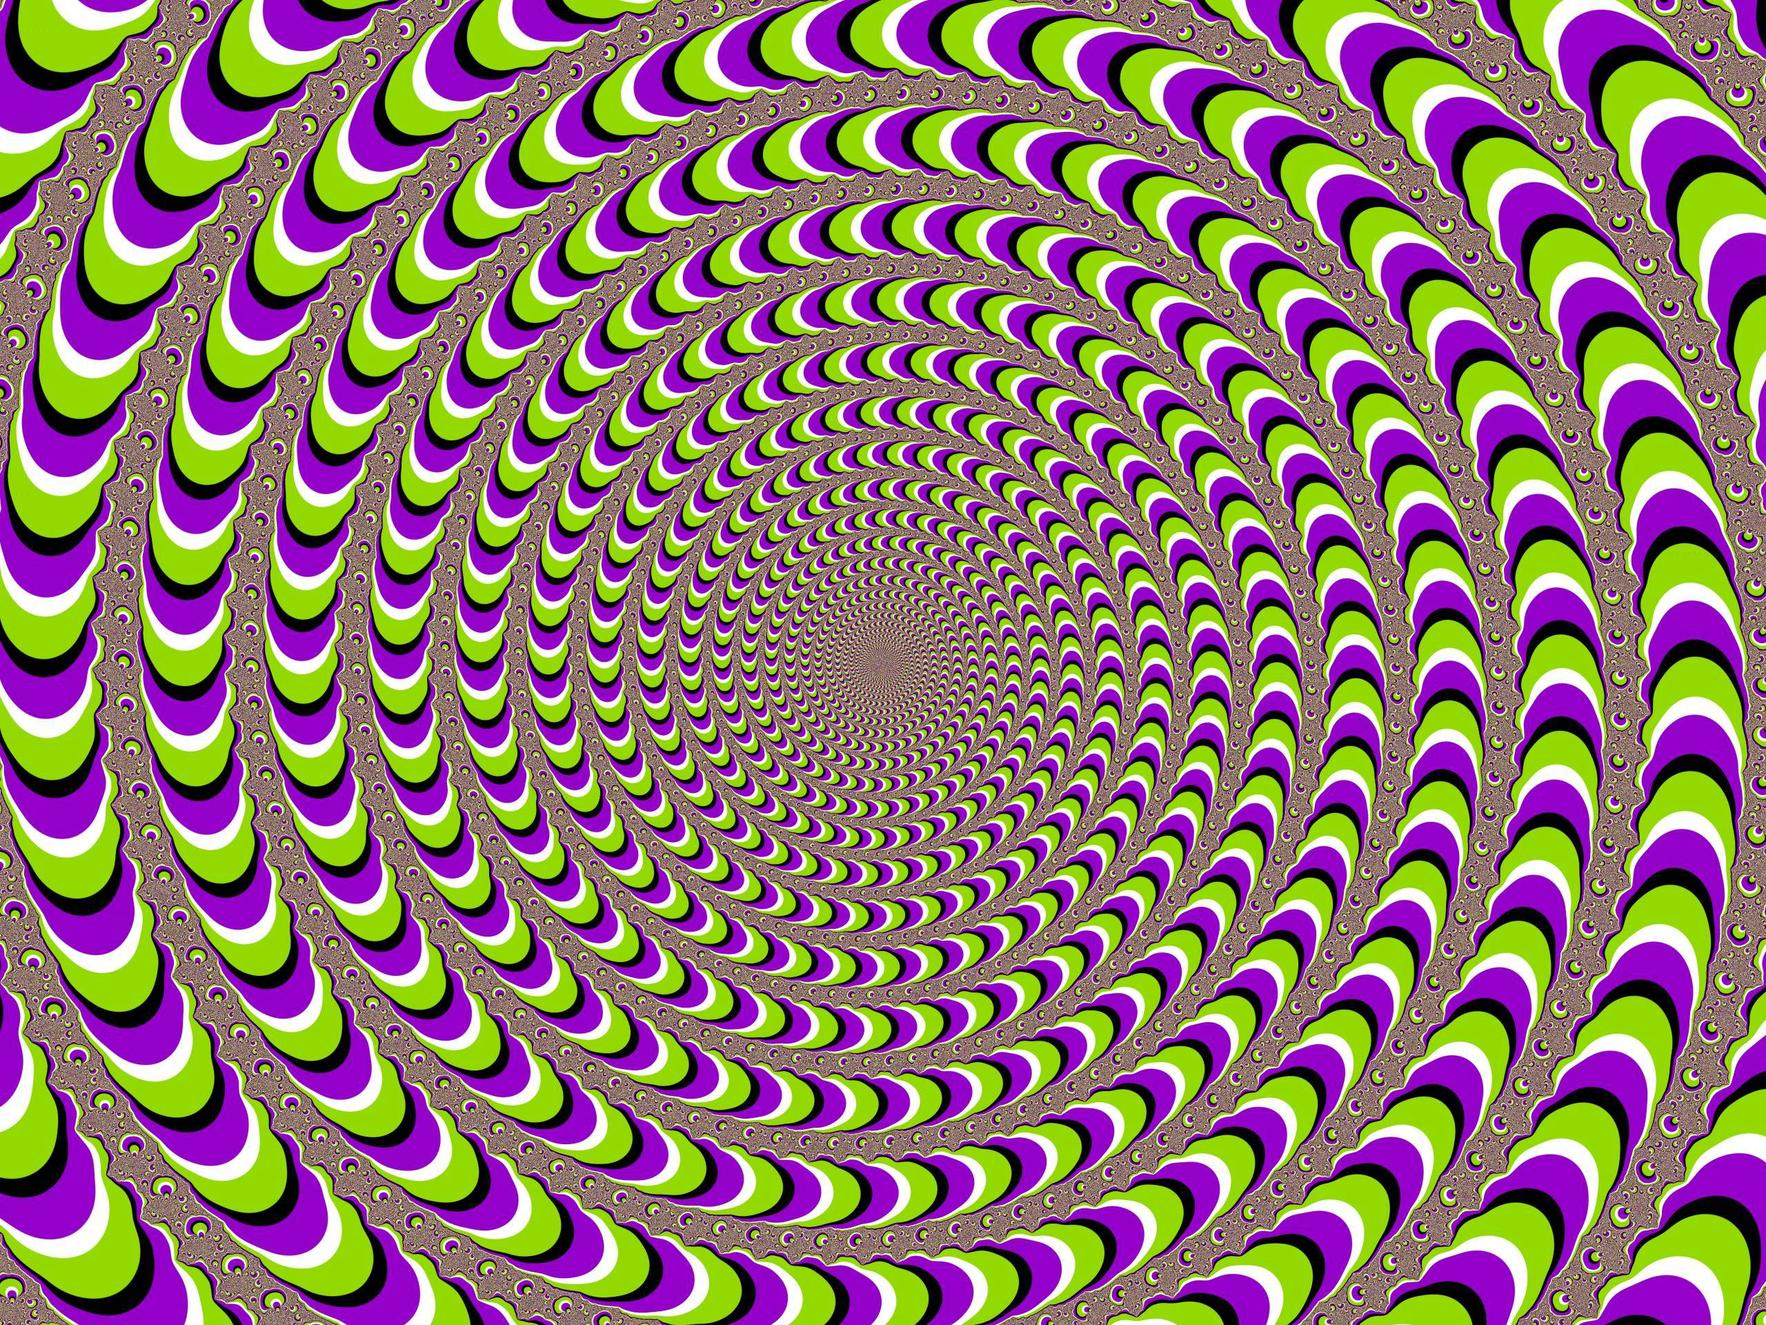 Psychedelic Wallpaper And Background Image 1766x1325 Id 382249